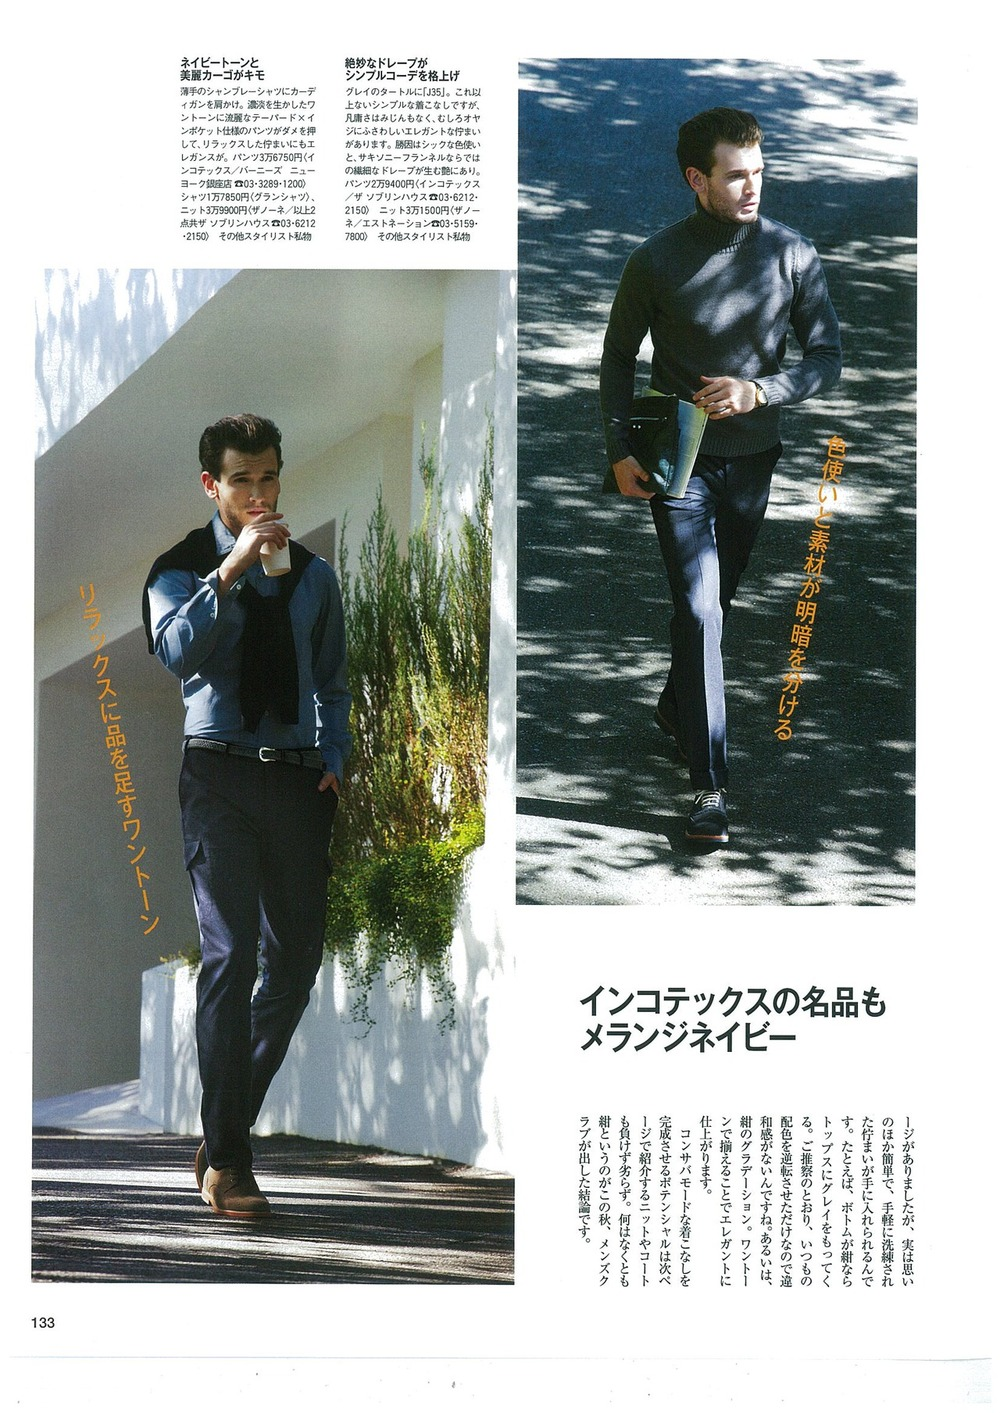 Richard Bell shot by Taro Hirano for  Men's Club Magazine  in Tokyo |  Source